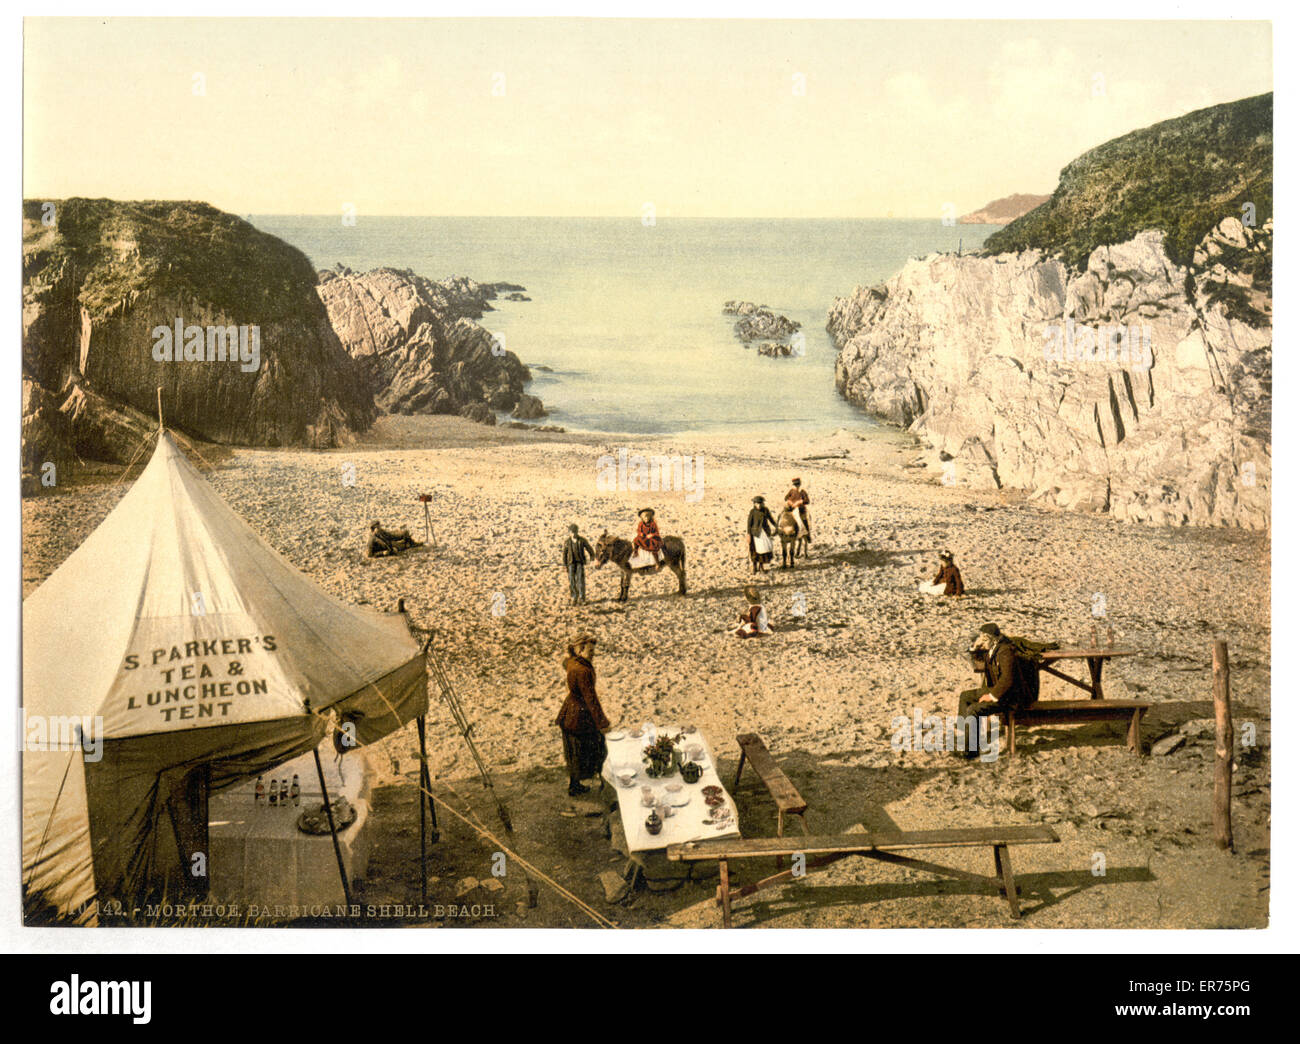 Barricane Shell Beach, Morthoe, England. Date between ca. 1890 and ca. 1900. - Stock Image